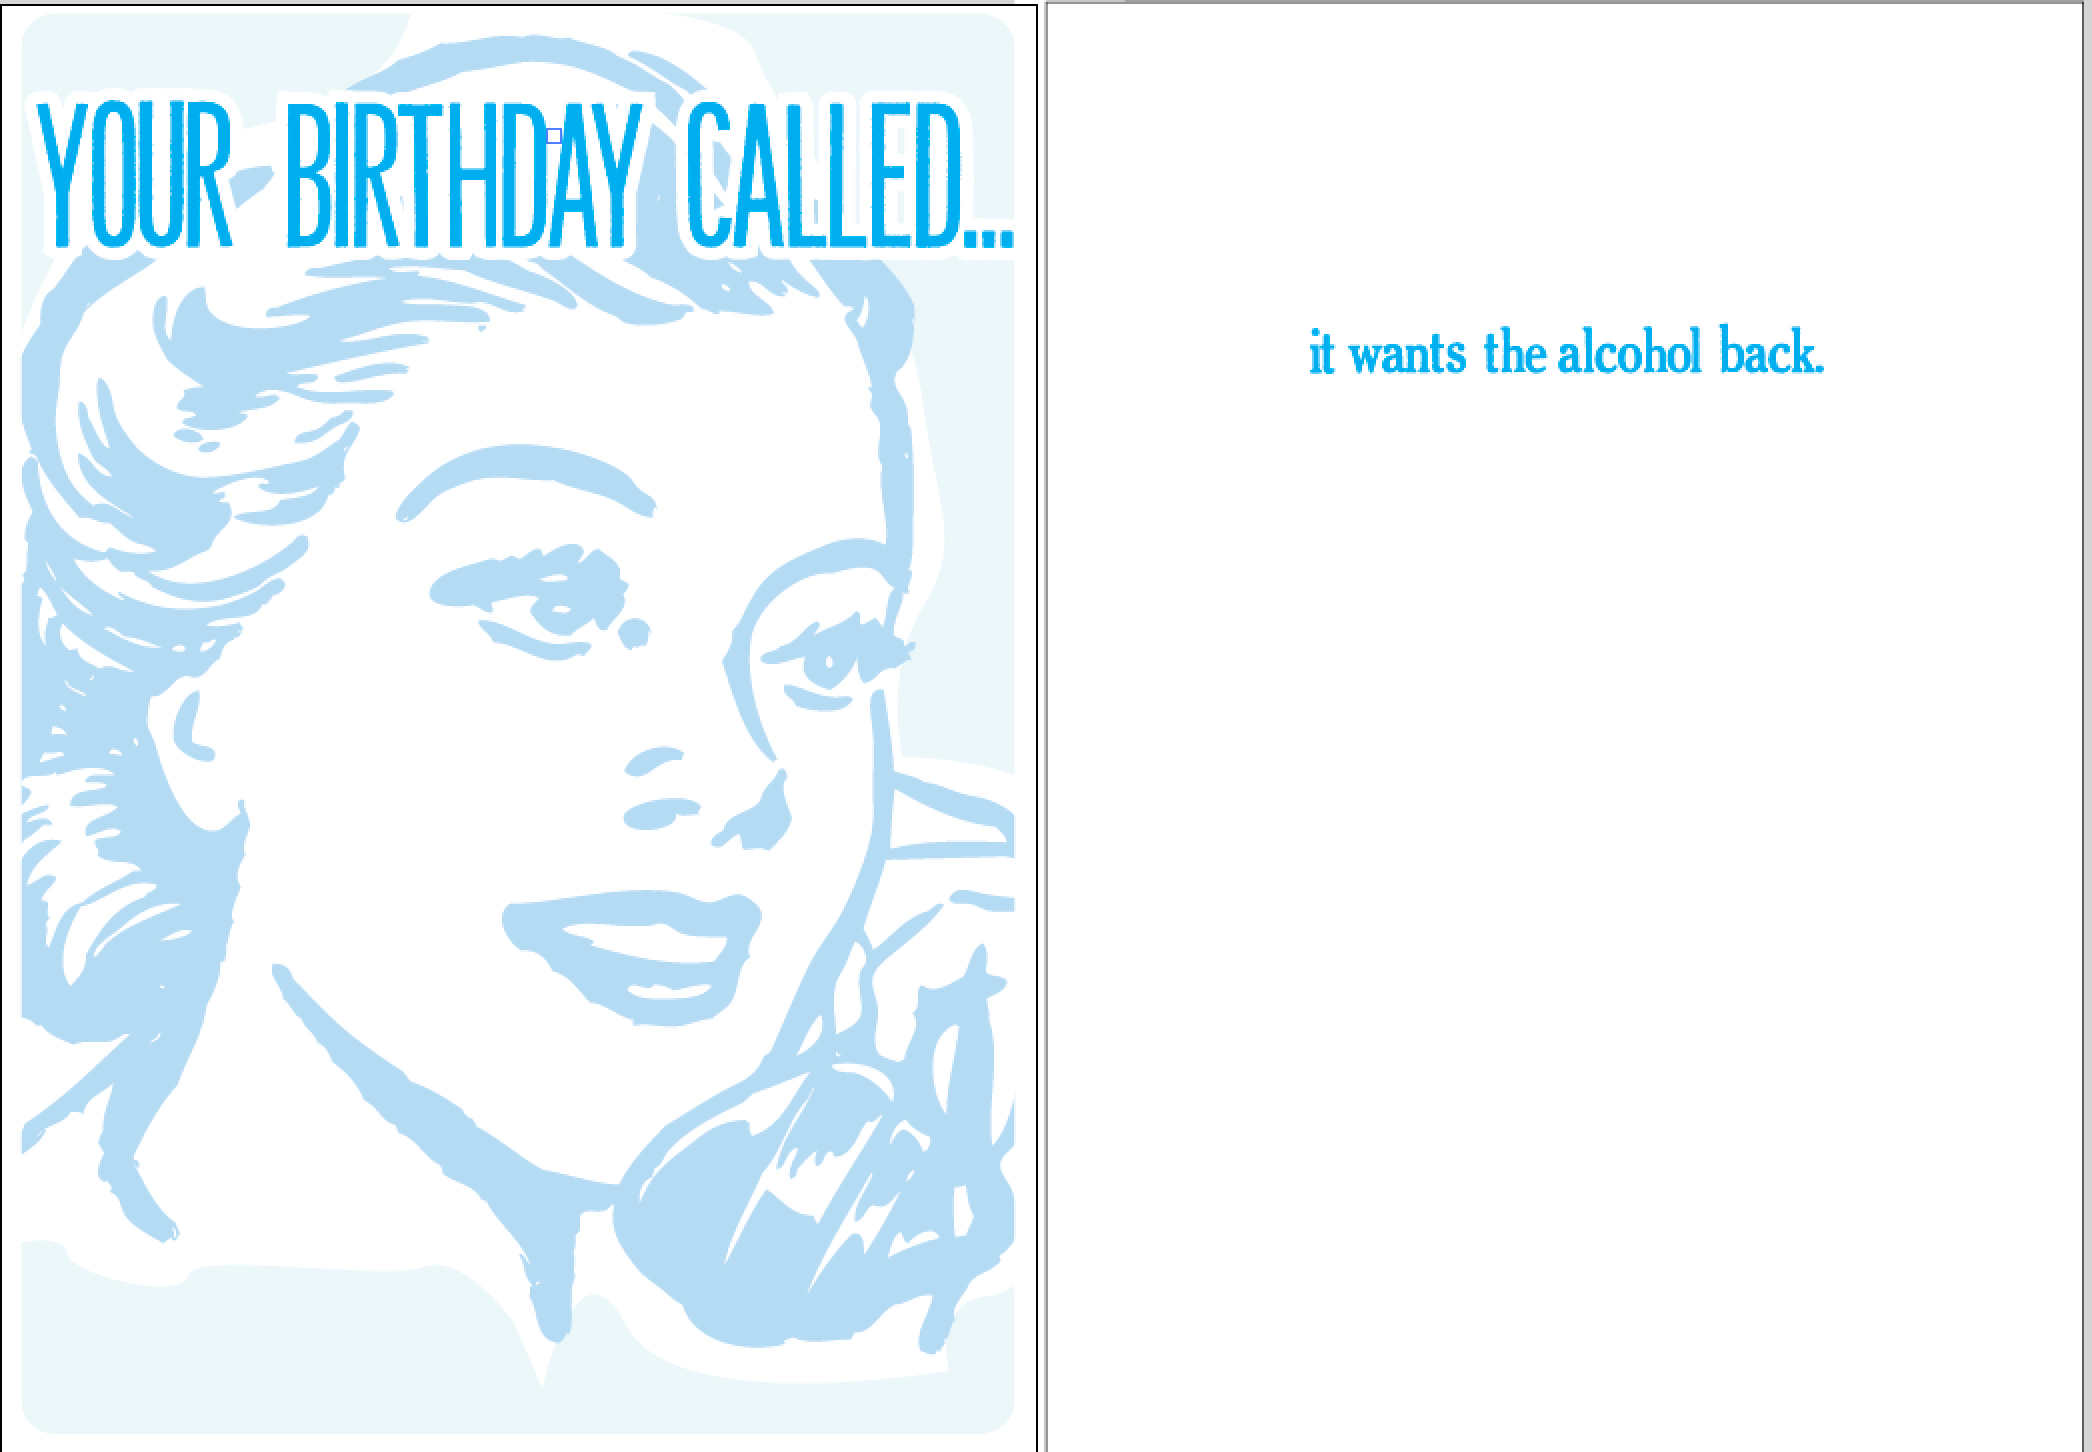 rsvp.your birthday called